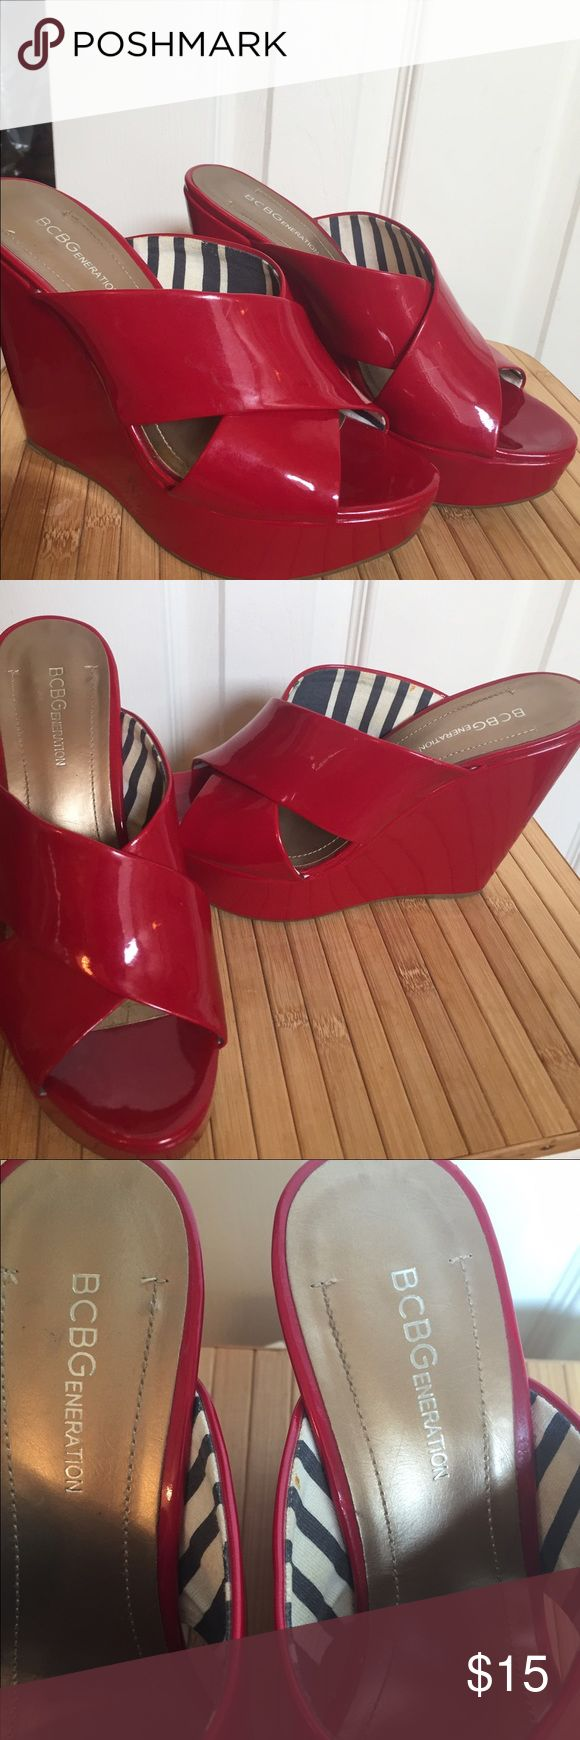 Red Wedge shoes size 7.5 BCBG Generation Gently used 7.5 red Jessica Simpson wedge sandals BCBGeneration Shoes Platforms